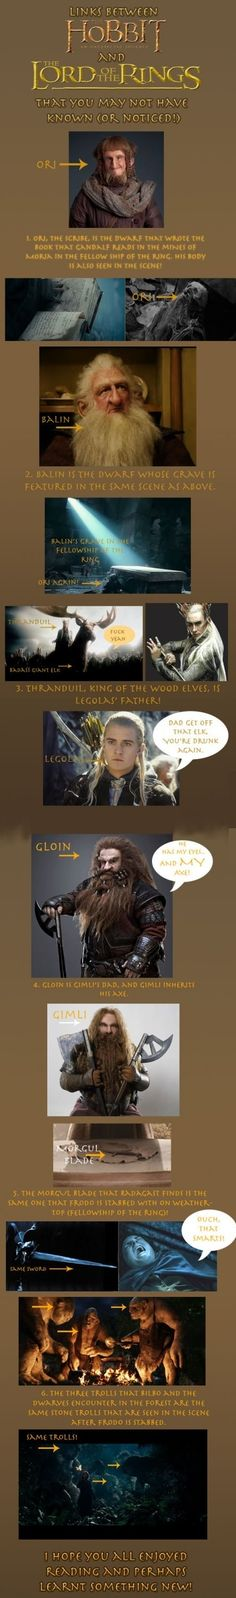 LOTR NERDS! You're gonna love this - Imgur